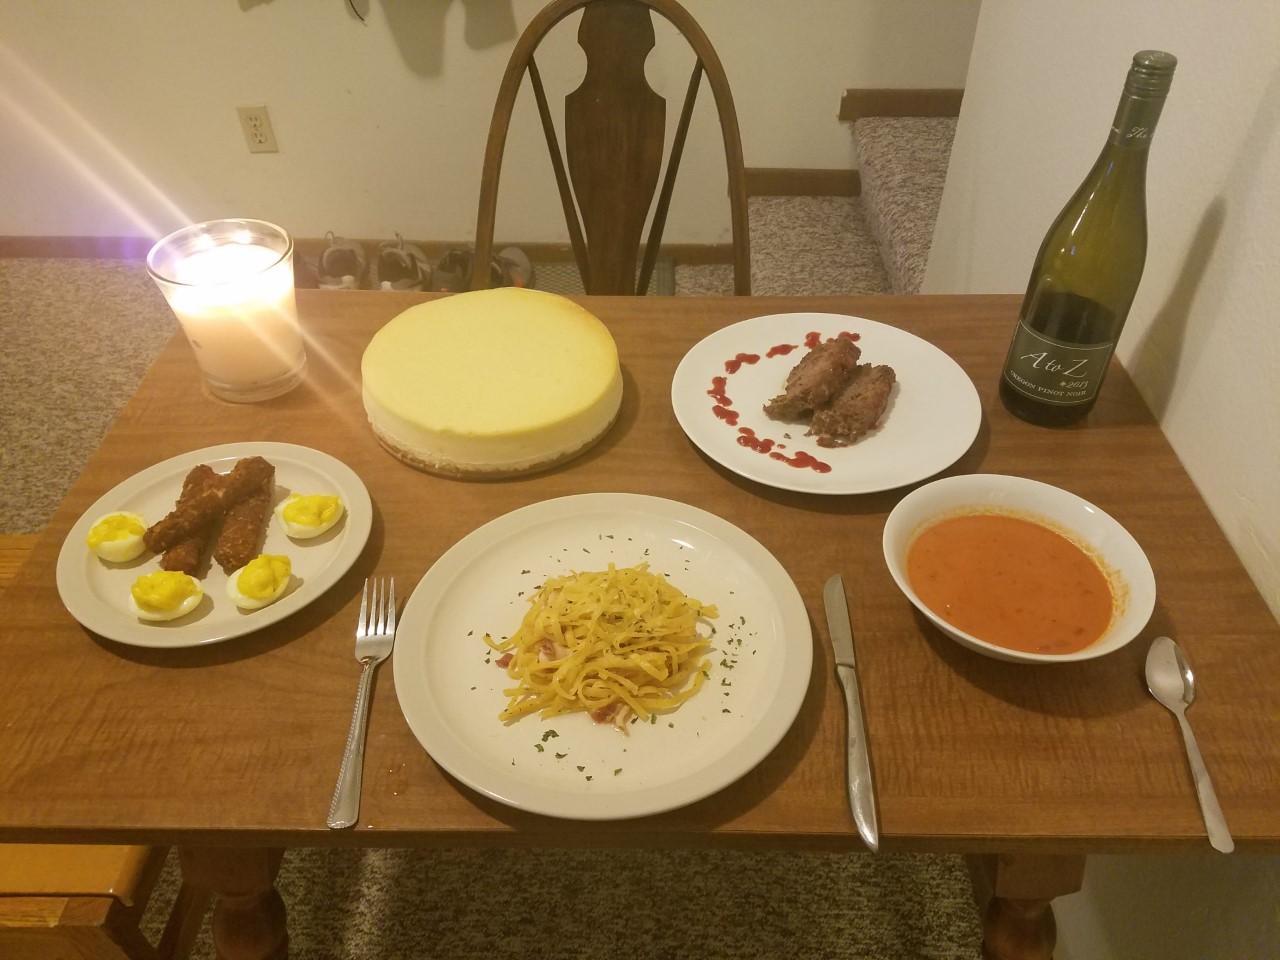 Tomato soup, mozzarella sticks, deviled eggs, cheesecake, meatloaf and pasta crafted from ordinary ingredients found at Walgreens.